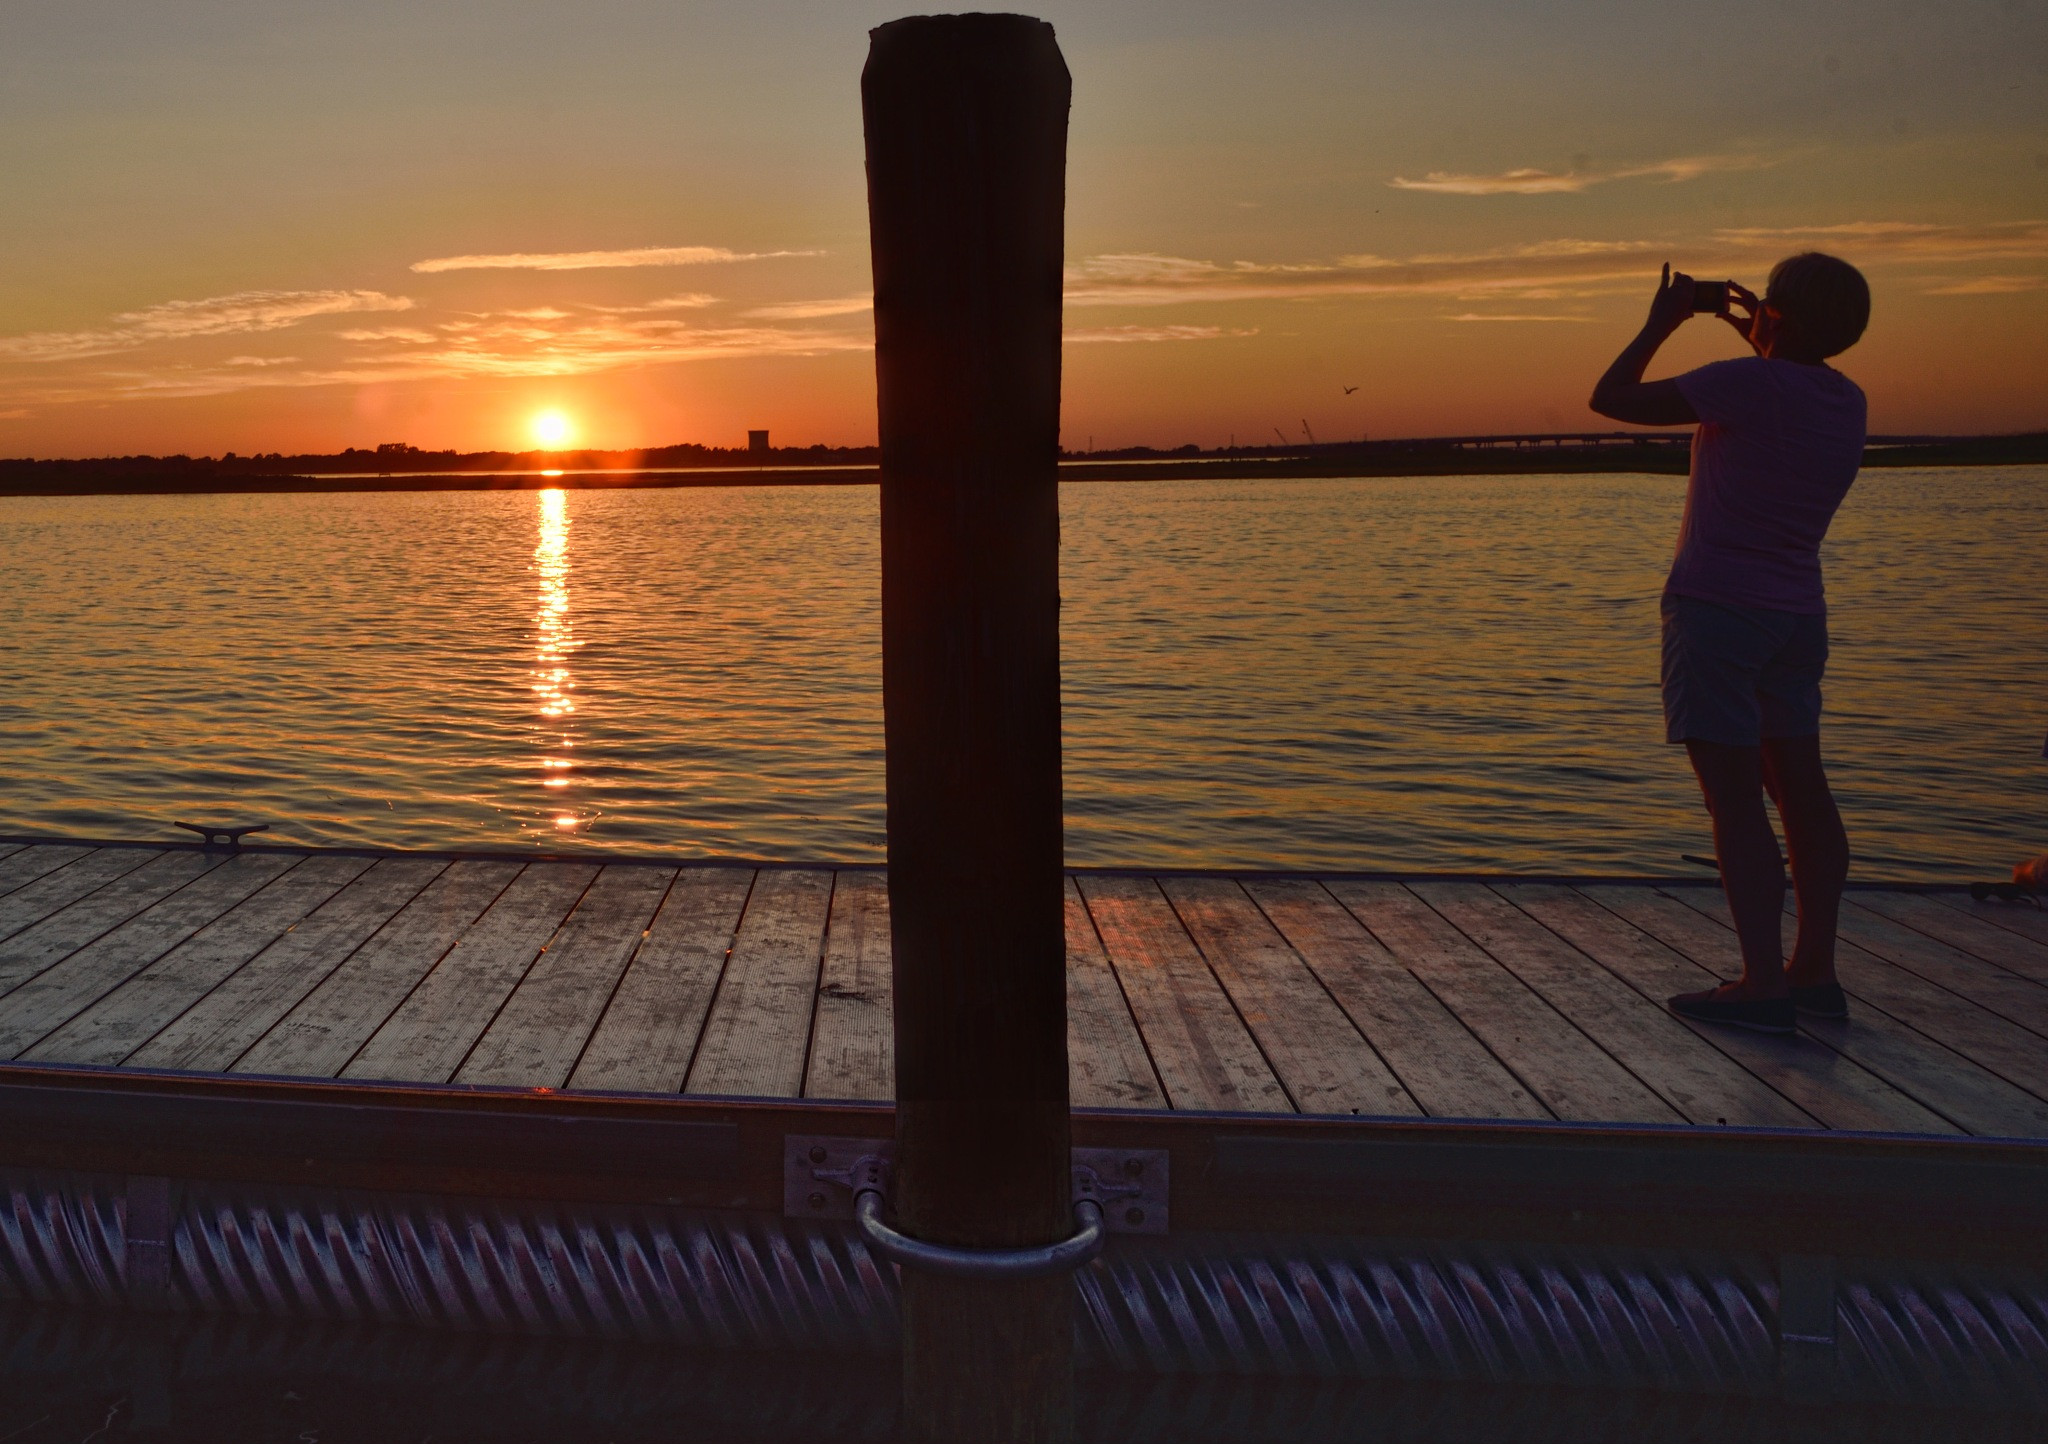 shooting the sunset by Dan McGovern